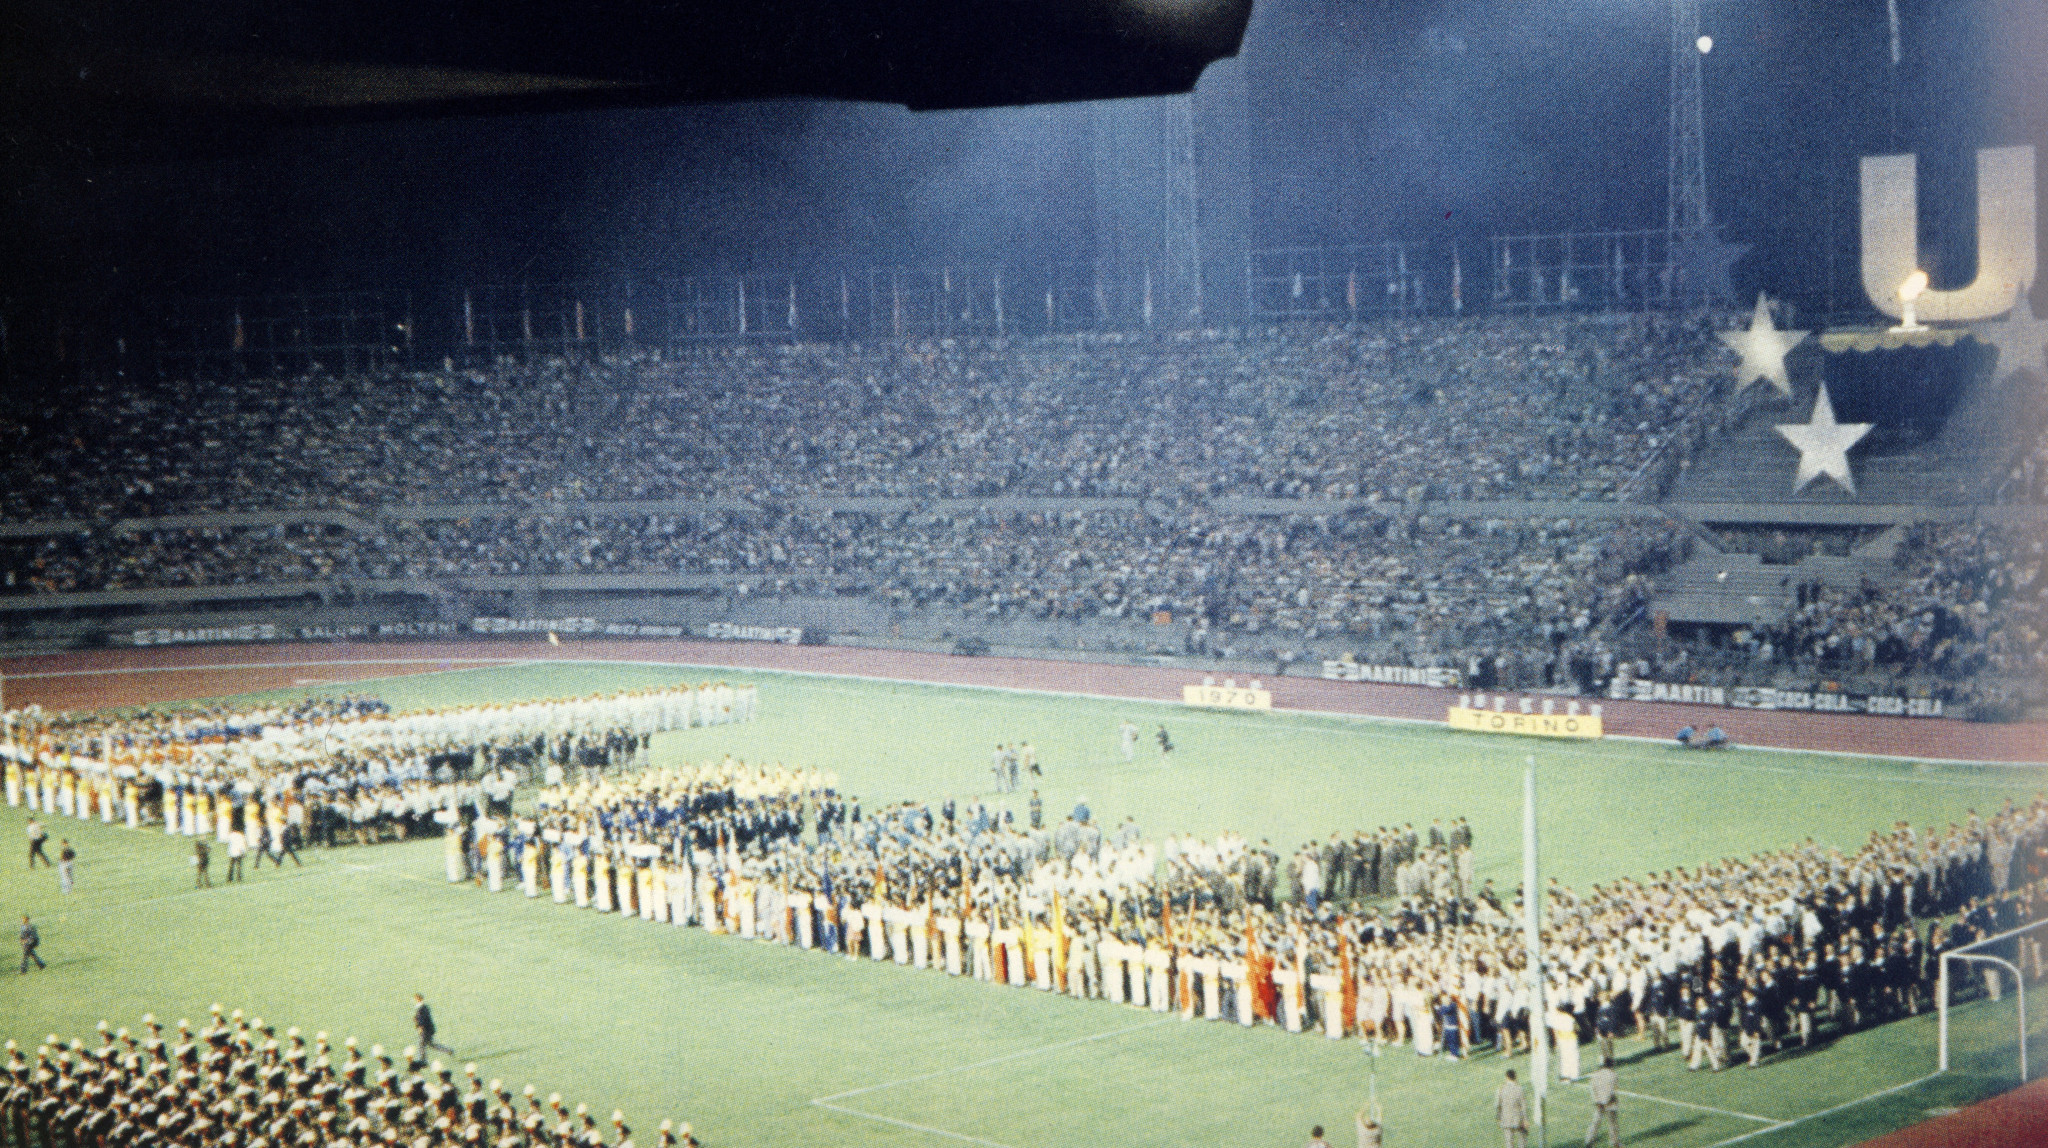 The Turin 1970 Opening Ceremony ©CUSI